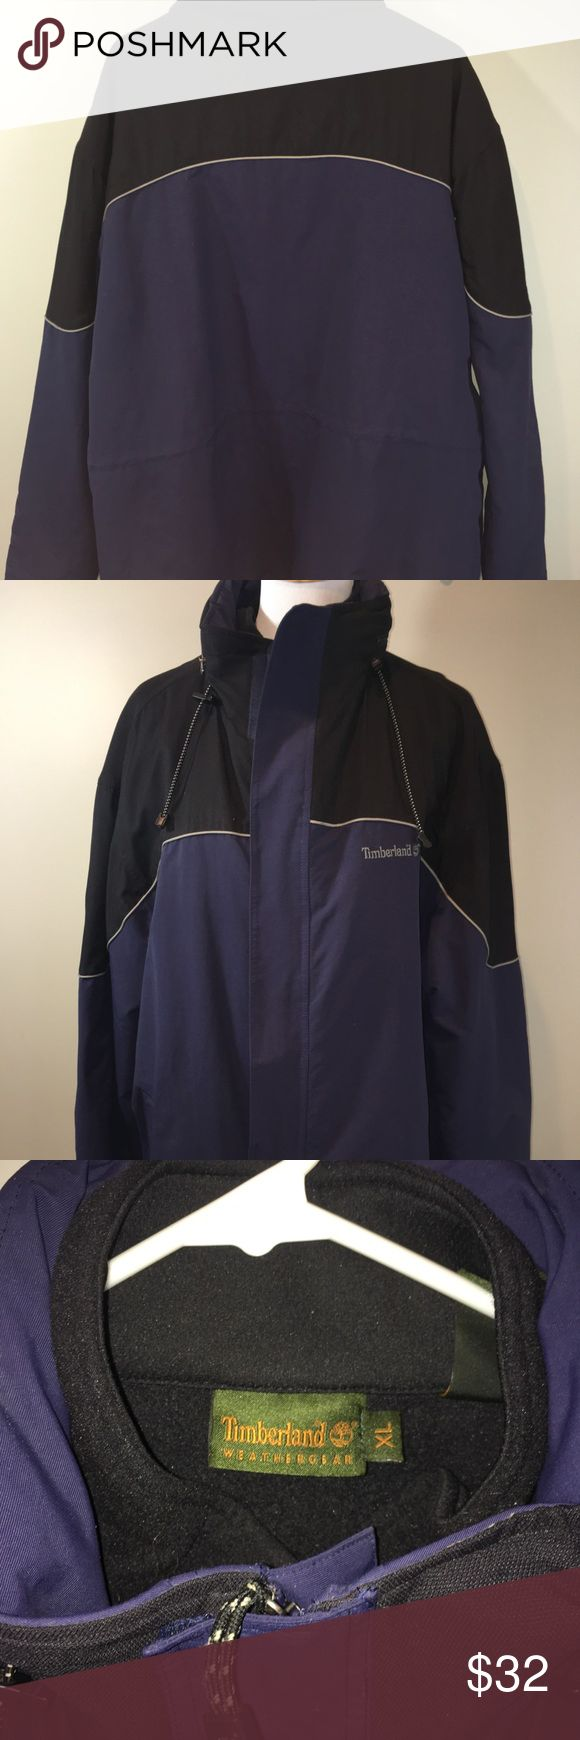 Men's Timberland Jacket  Men's Size XL Men's Timberland Winter Jacket with Removable Fleece     Men's size XL.    Navy and Black color. Timberland Jackets & Coats Performance Jackets